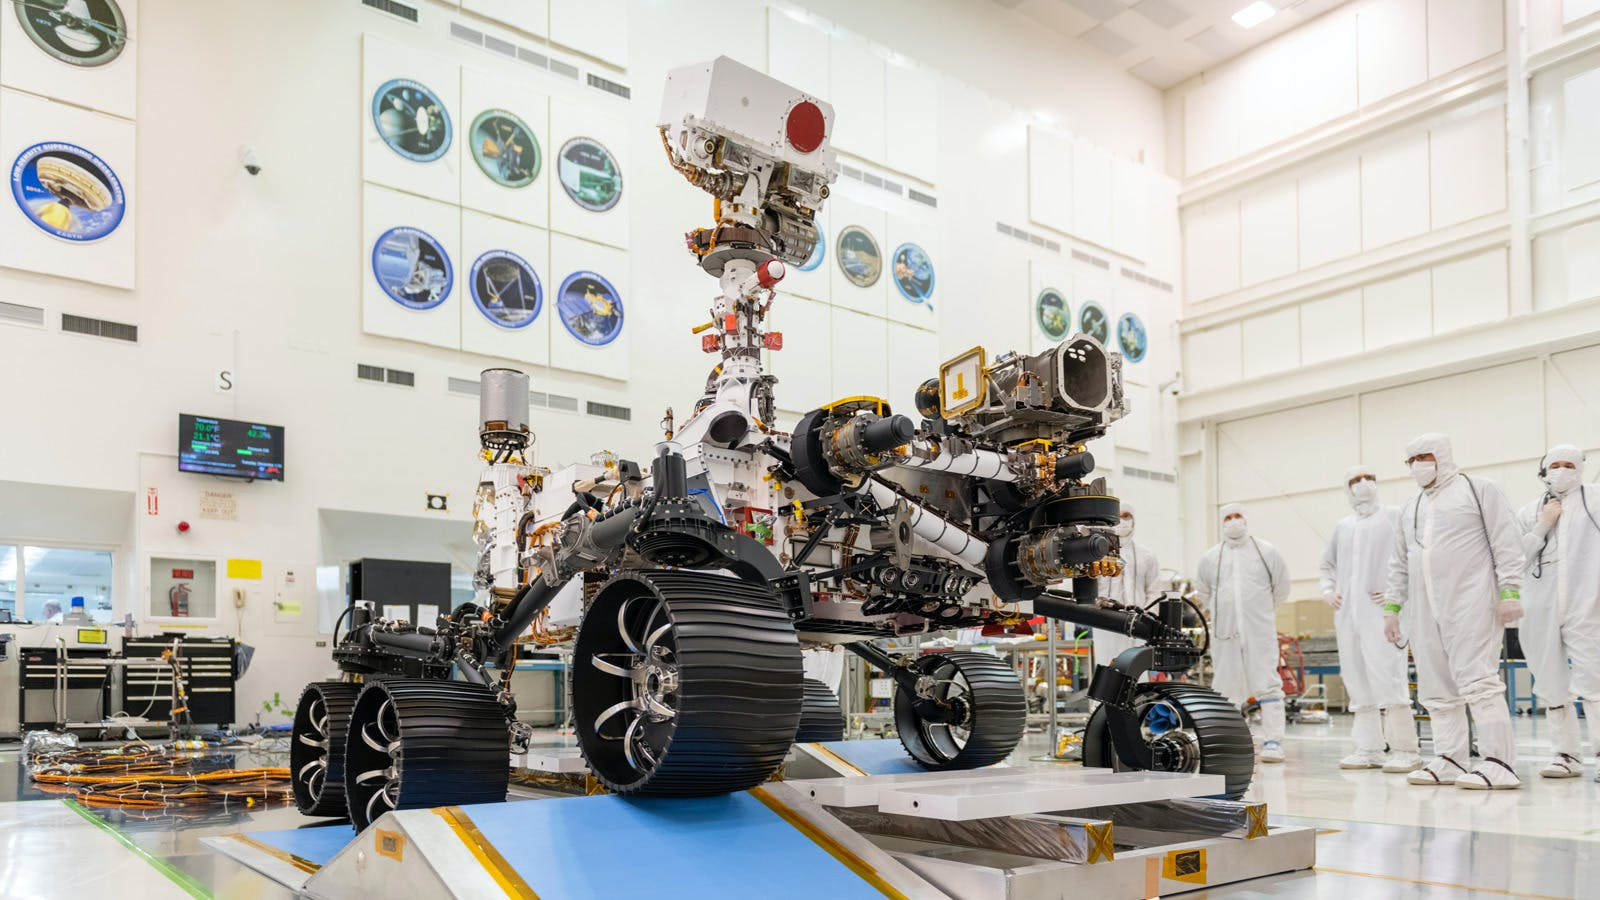 NASA TO BROADCAST MARS 2020 PERSEVERANCE ROVER LAUNCH